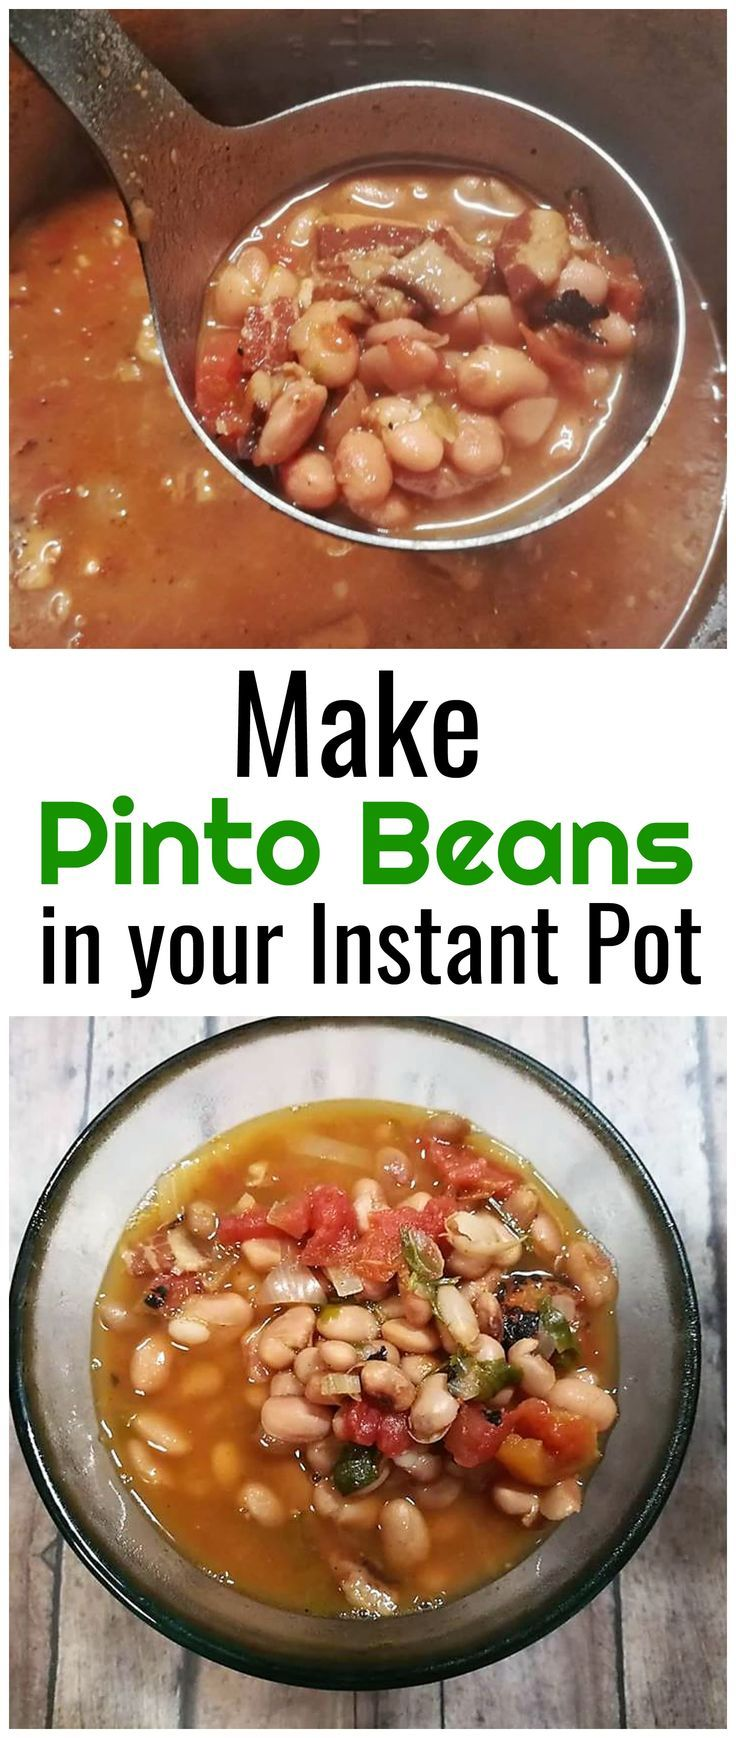 Pinto Beans in Instant Pot.  It was pretty simple and you will love.  Oh and the best thing is you can simply freeze your leftovers and your family can pull out the night before and enjoy.  #instantpot #beans #pressurecookers